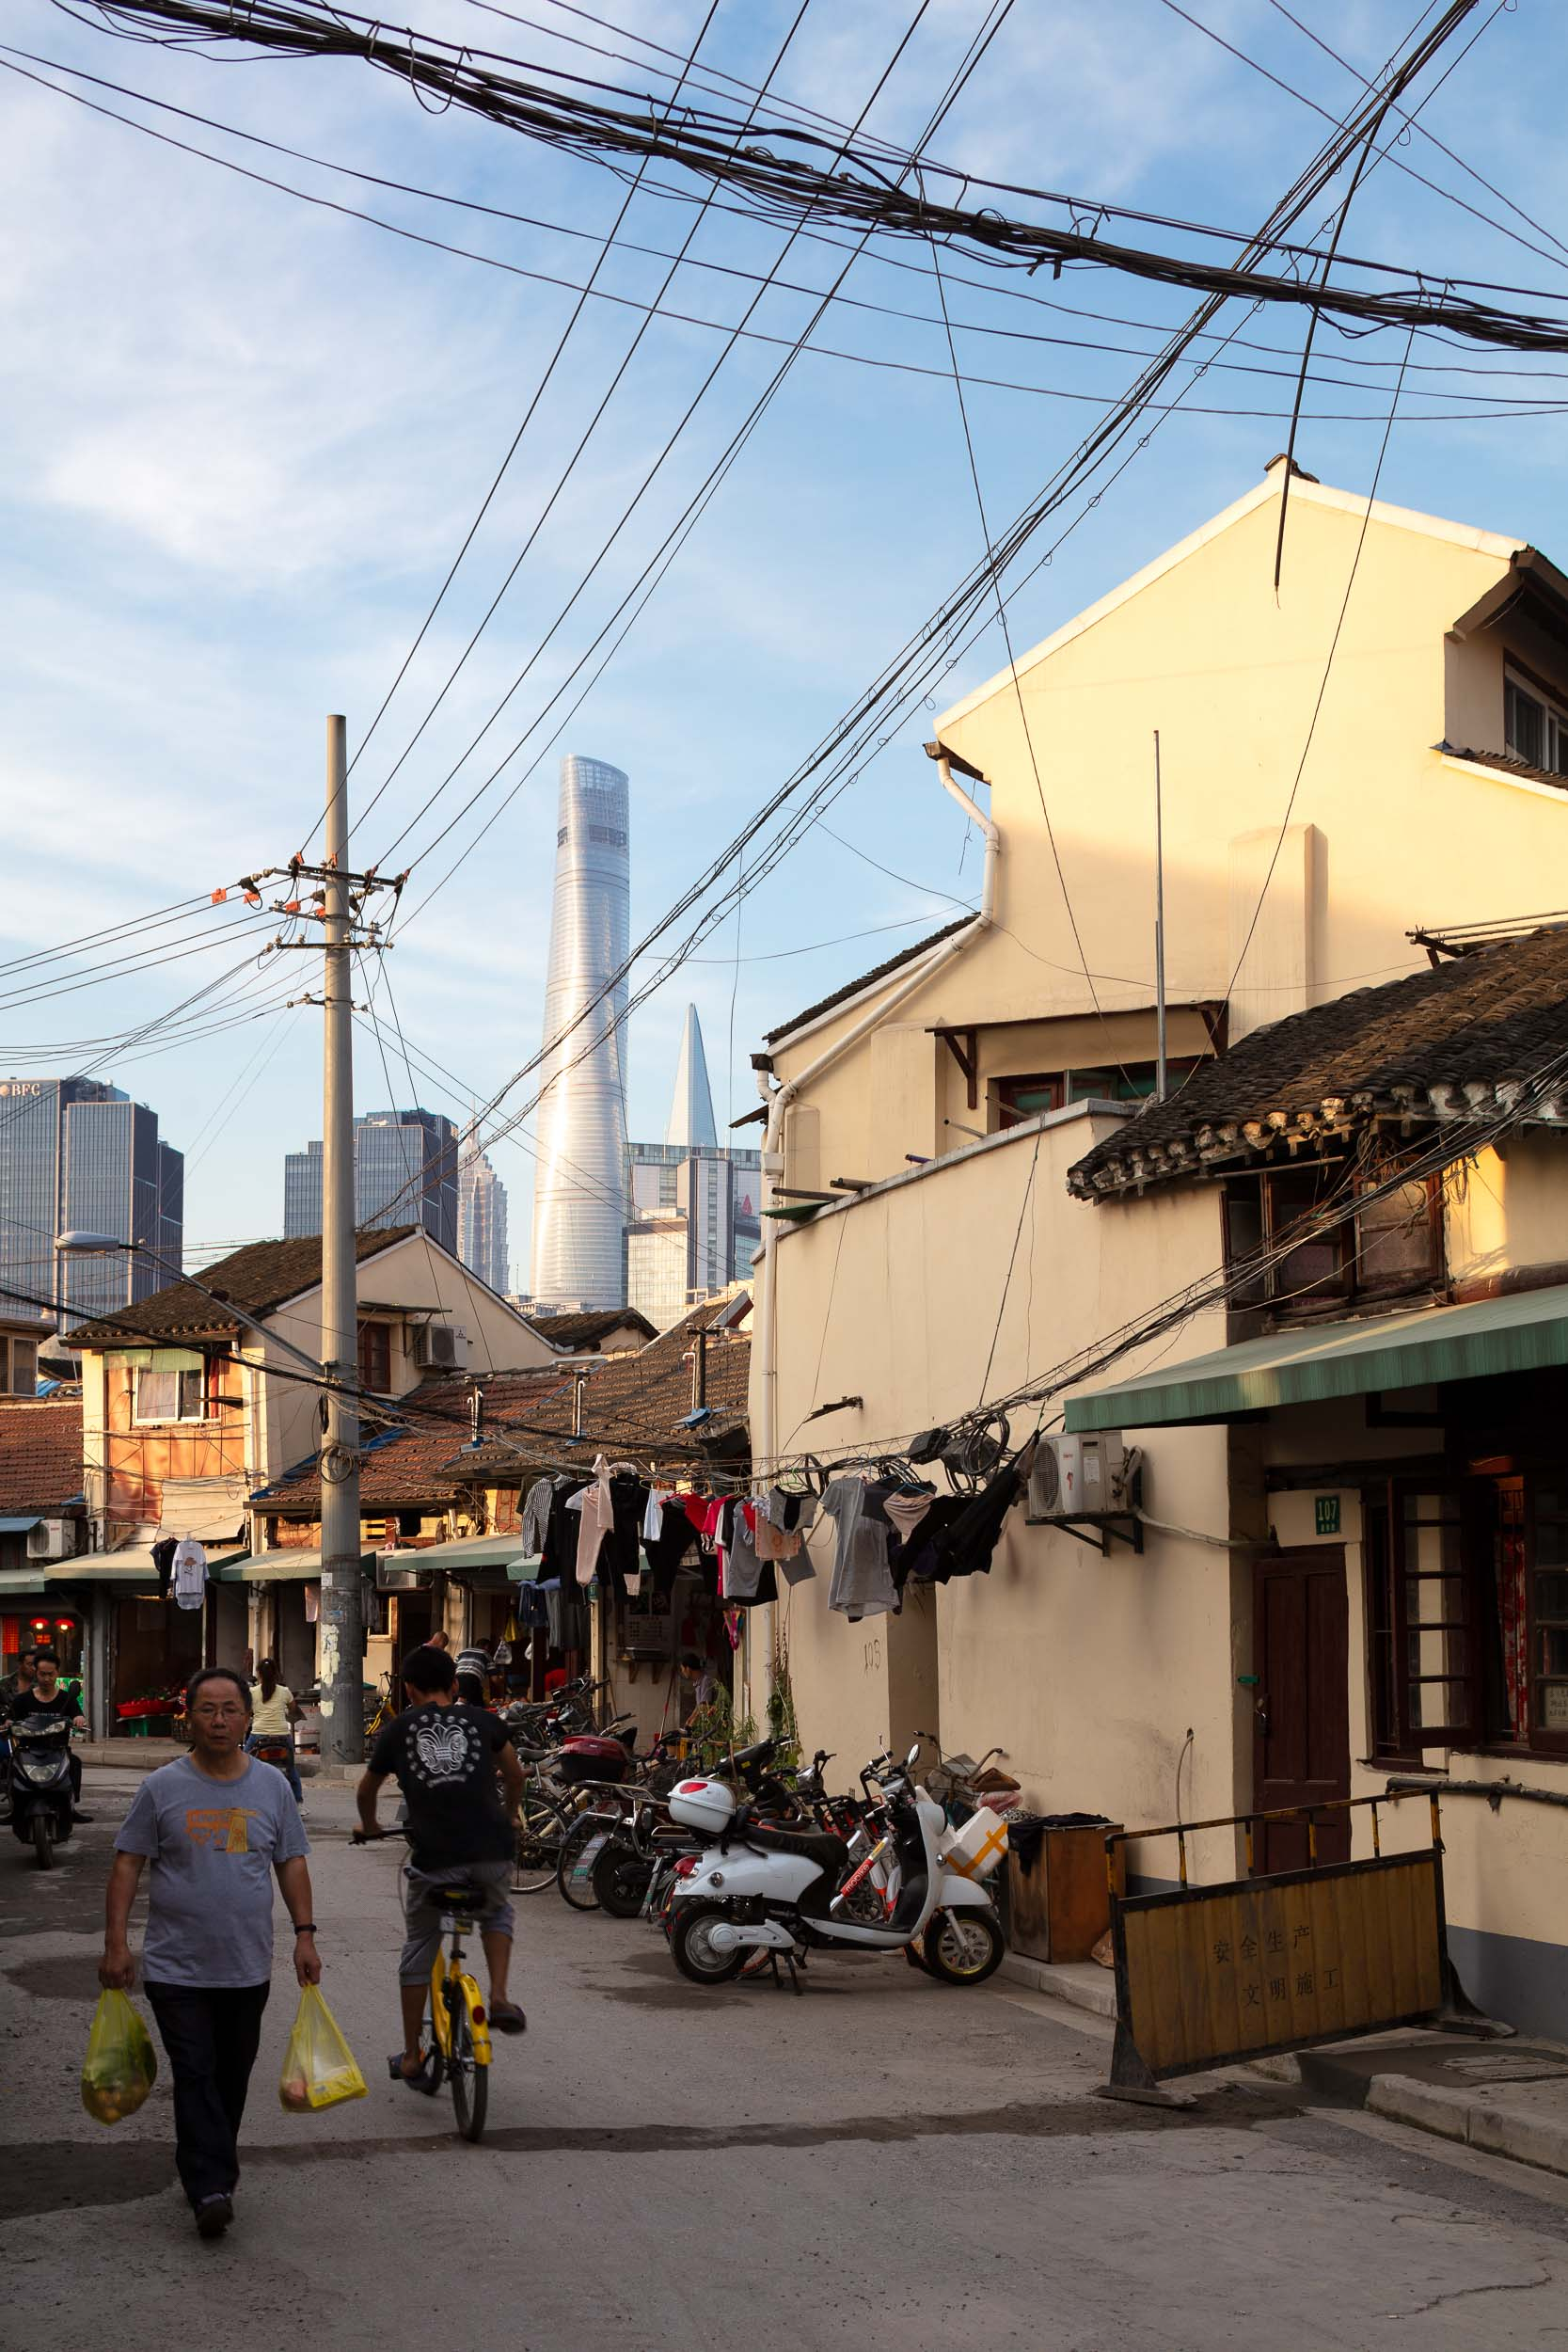 Old Shanghai with the modern skyline in the background.